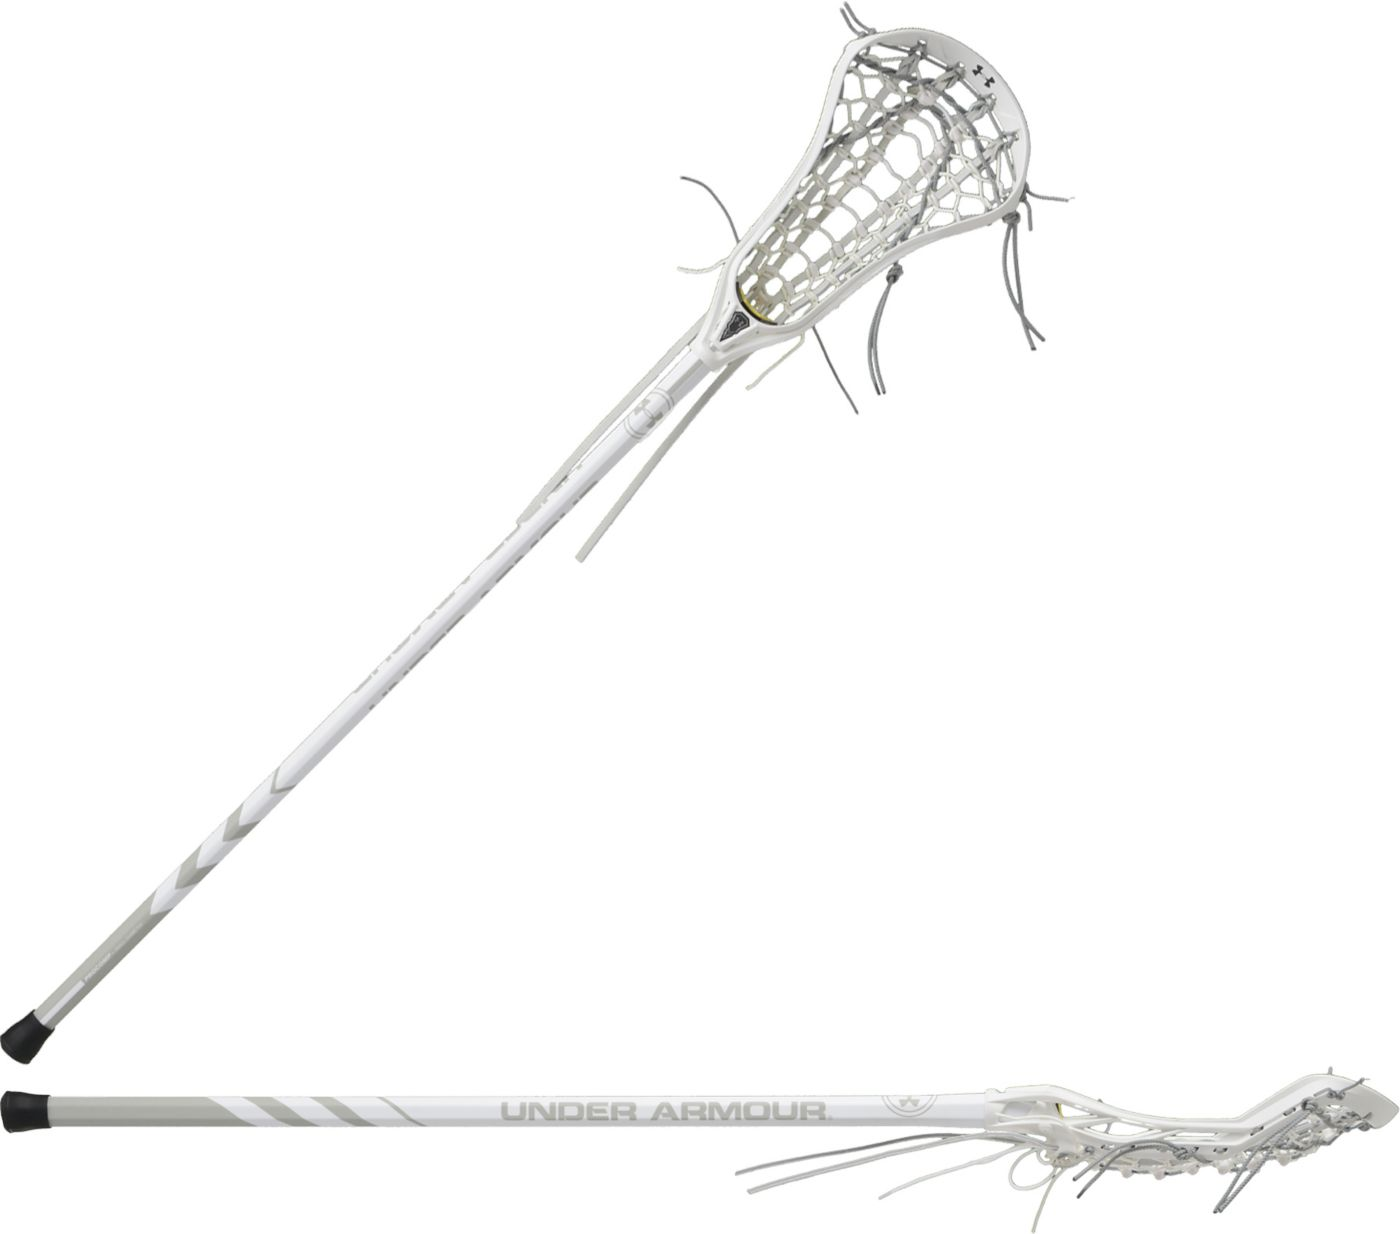 Under Armour Women's Emissary Complete Lacrosse Stick